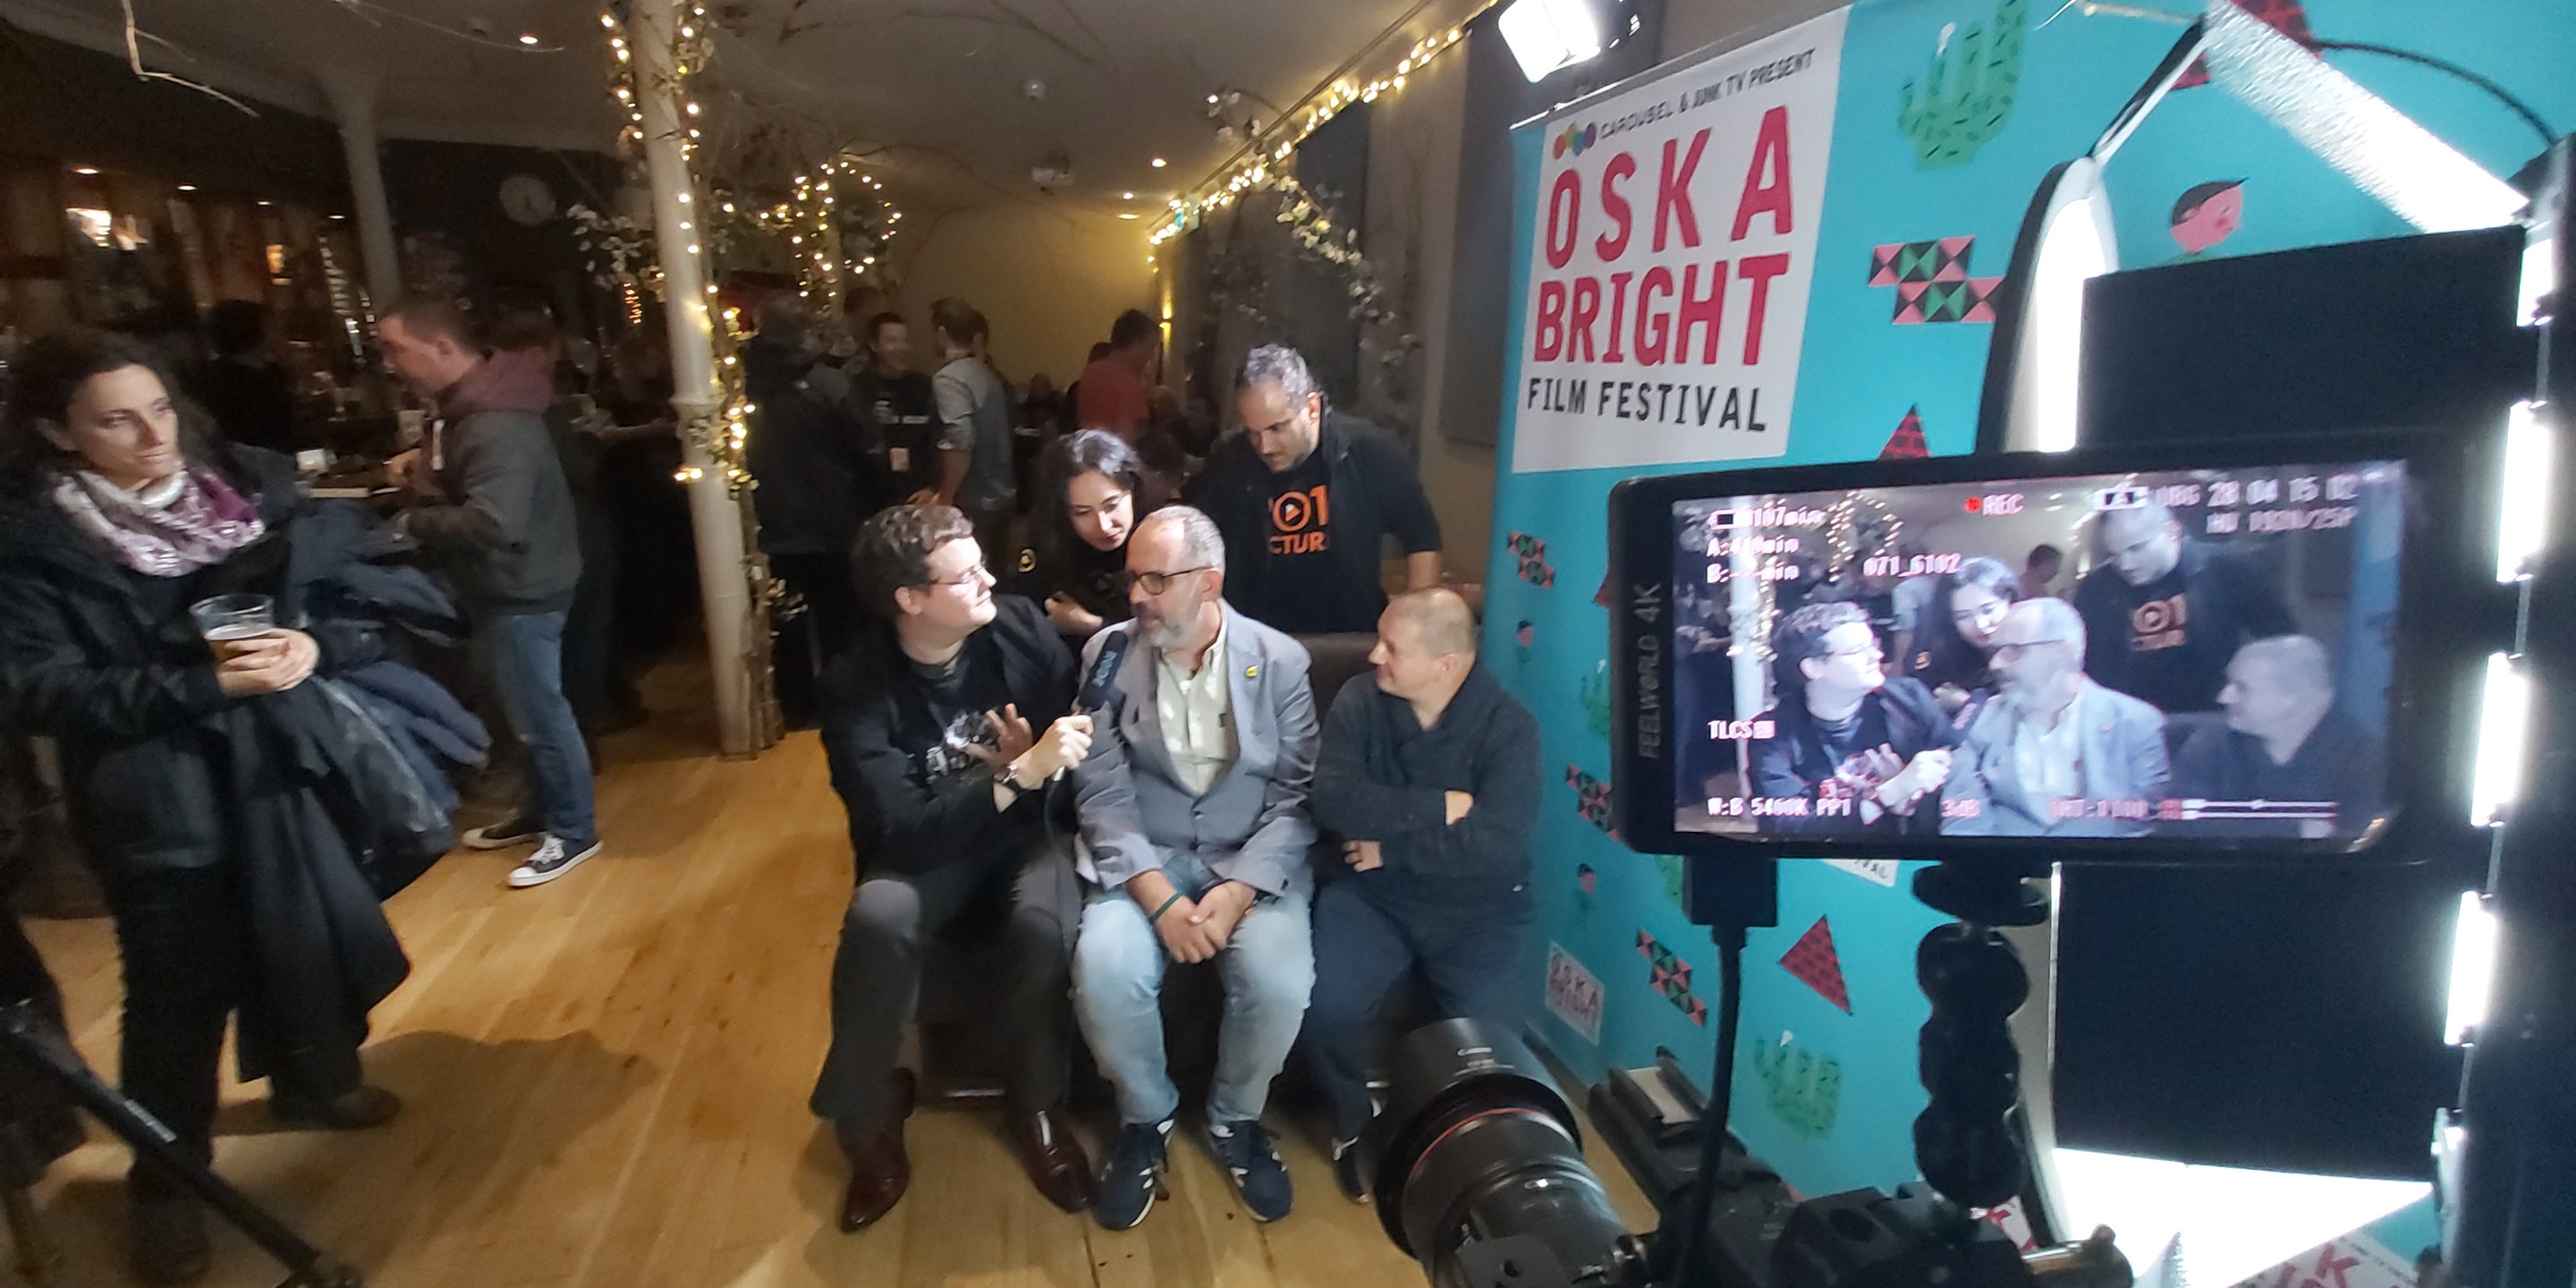 Oska Bright Film Festival